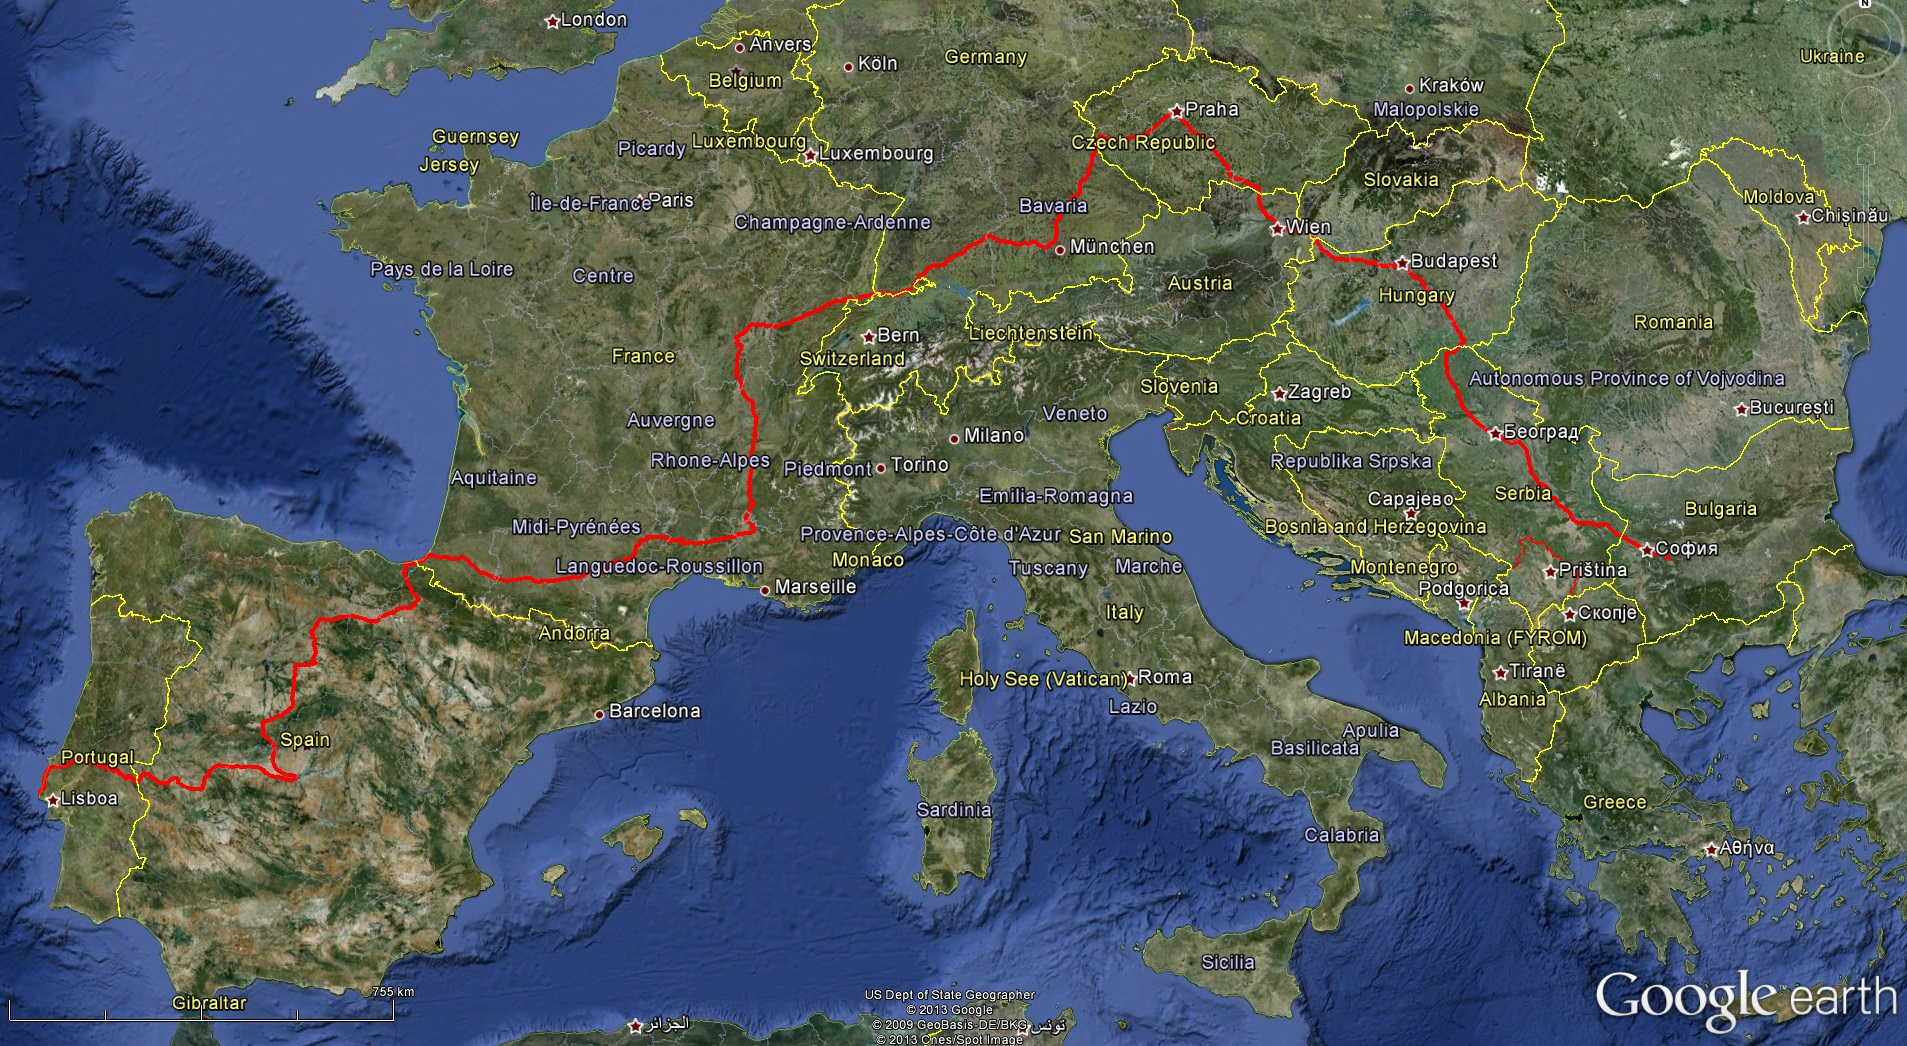 TNS Europe to 6 May 2013 -Google earth | Tom's Next Step on latest map of europe, google road map europe, google switzerland europe, google maps eastern europe, google maps street view, google world maps with countries, home map of europe, easy to read map of europe, war map of europe, full map of europe, google search map of europe, london on map of europe, garmin map of europe, old world map of europe, largest cave in europe, bern on map of europe, detailed map of europe, size of europe, google maps europe slovenia, google map of western europe,